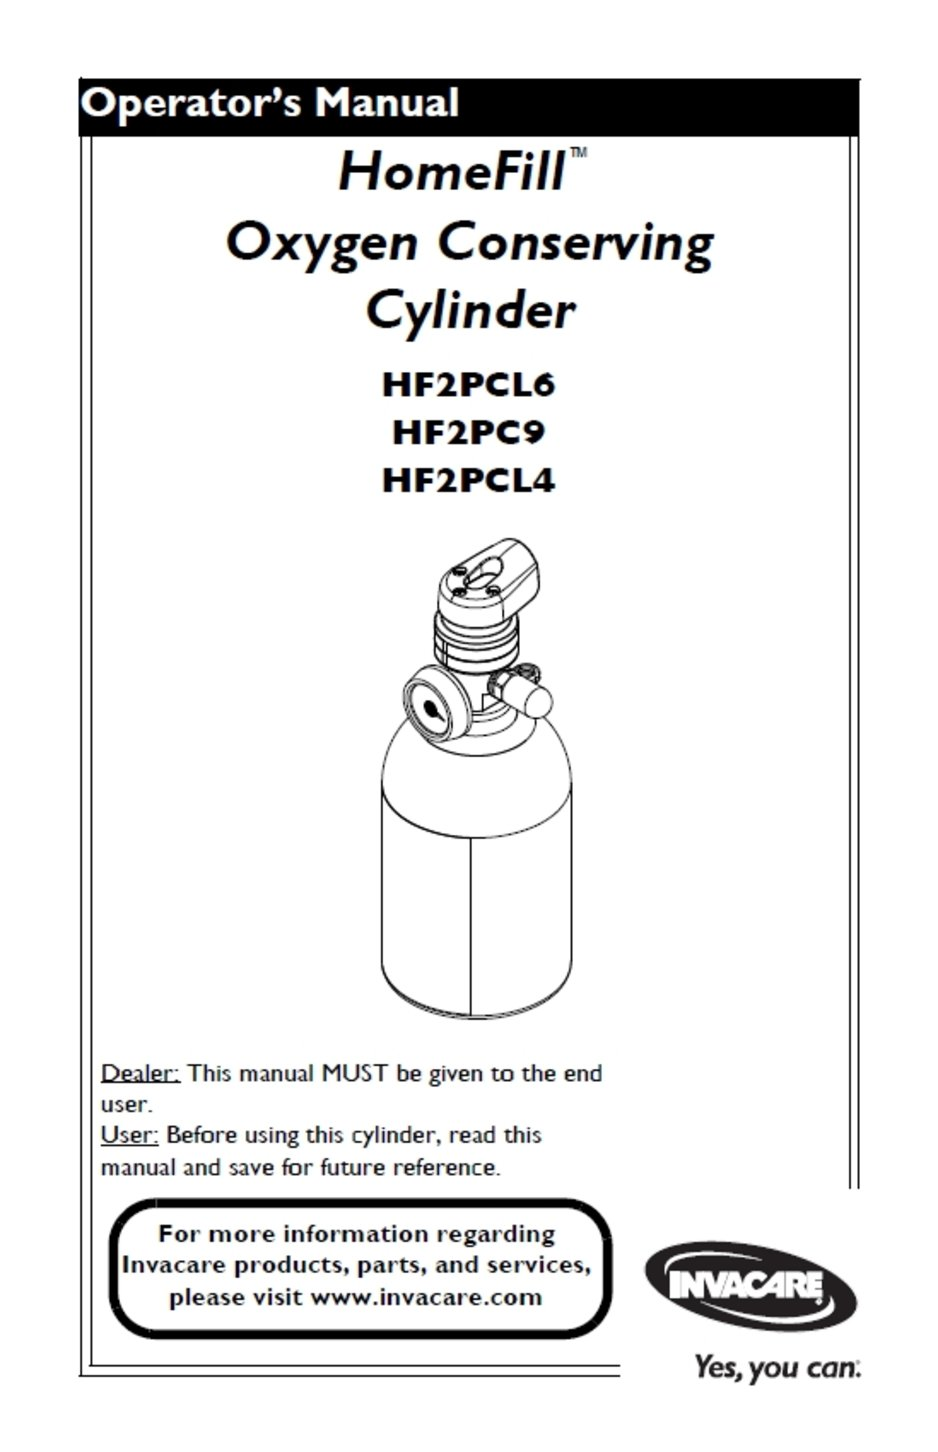 Homefill oxygen conserving cylinder